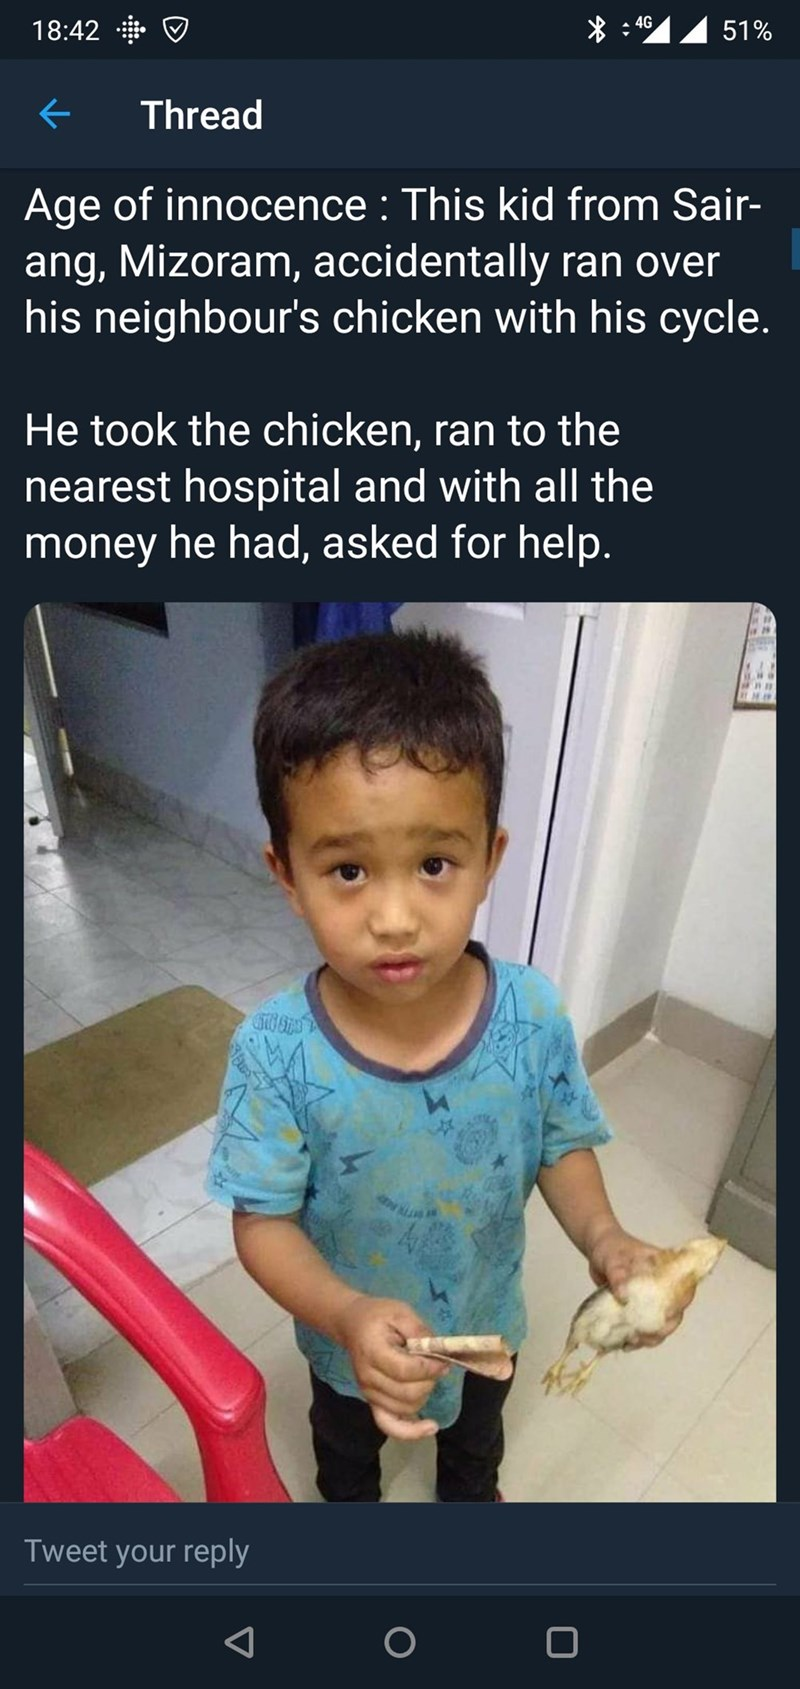 Child - 4G 51% 18:42 Thread Age of innocence: This kid from Sair- ang, Mizoram, accidentally ran over his neighbour's chicken with his cycle. He took the chicken, ran to the nearest hospital and with all the money he had, asked for help. 4 TR Tweet your reply